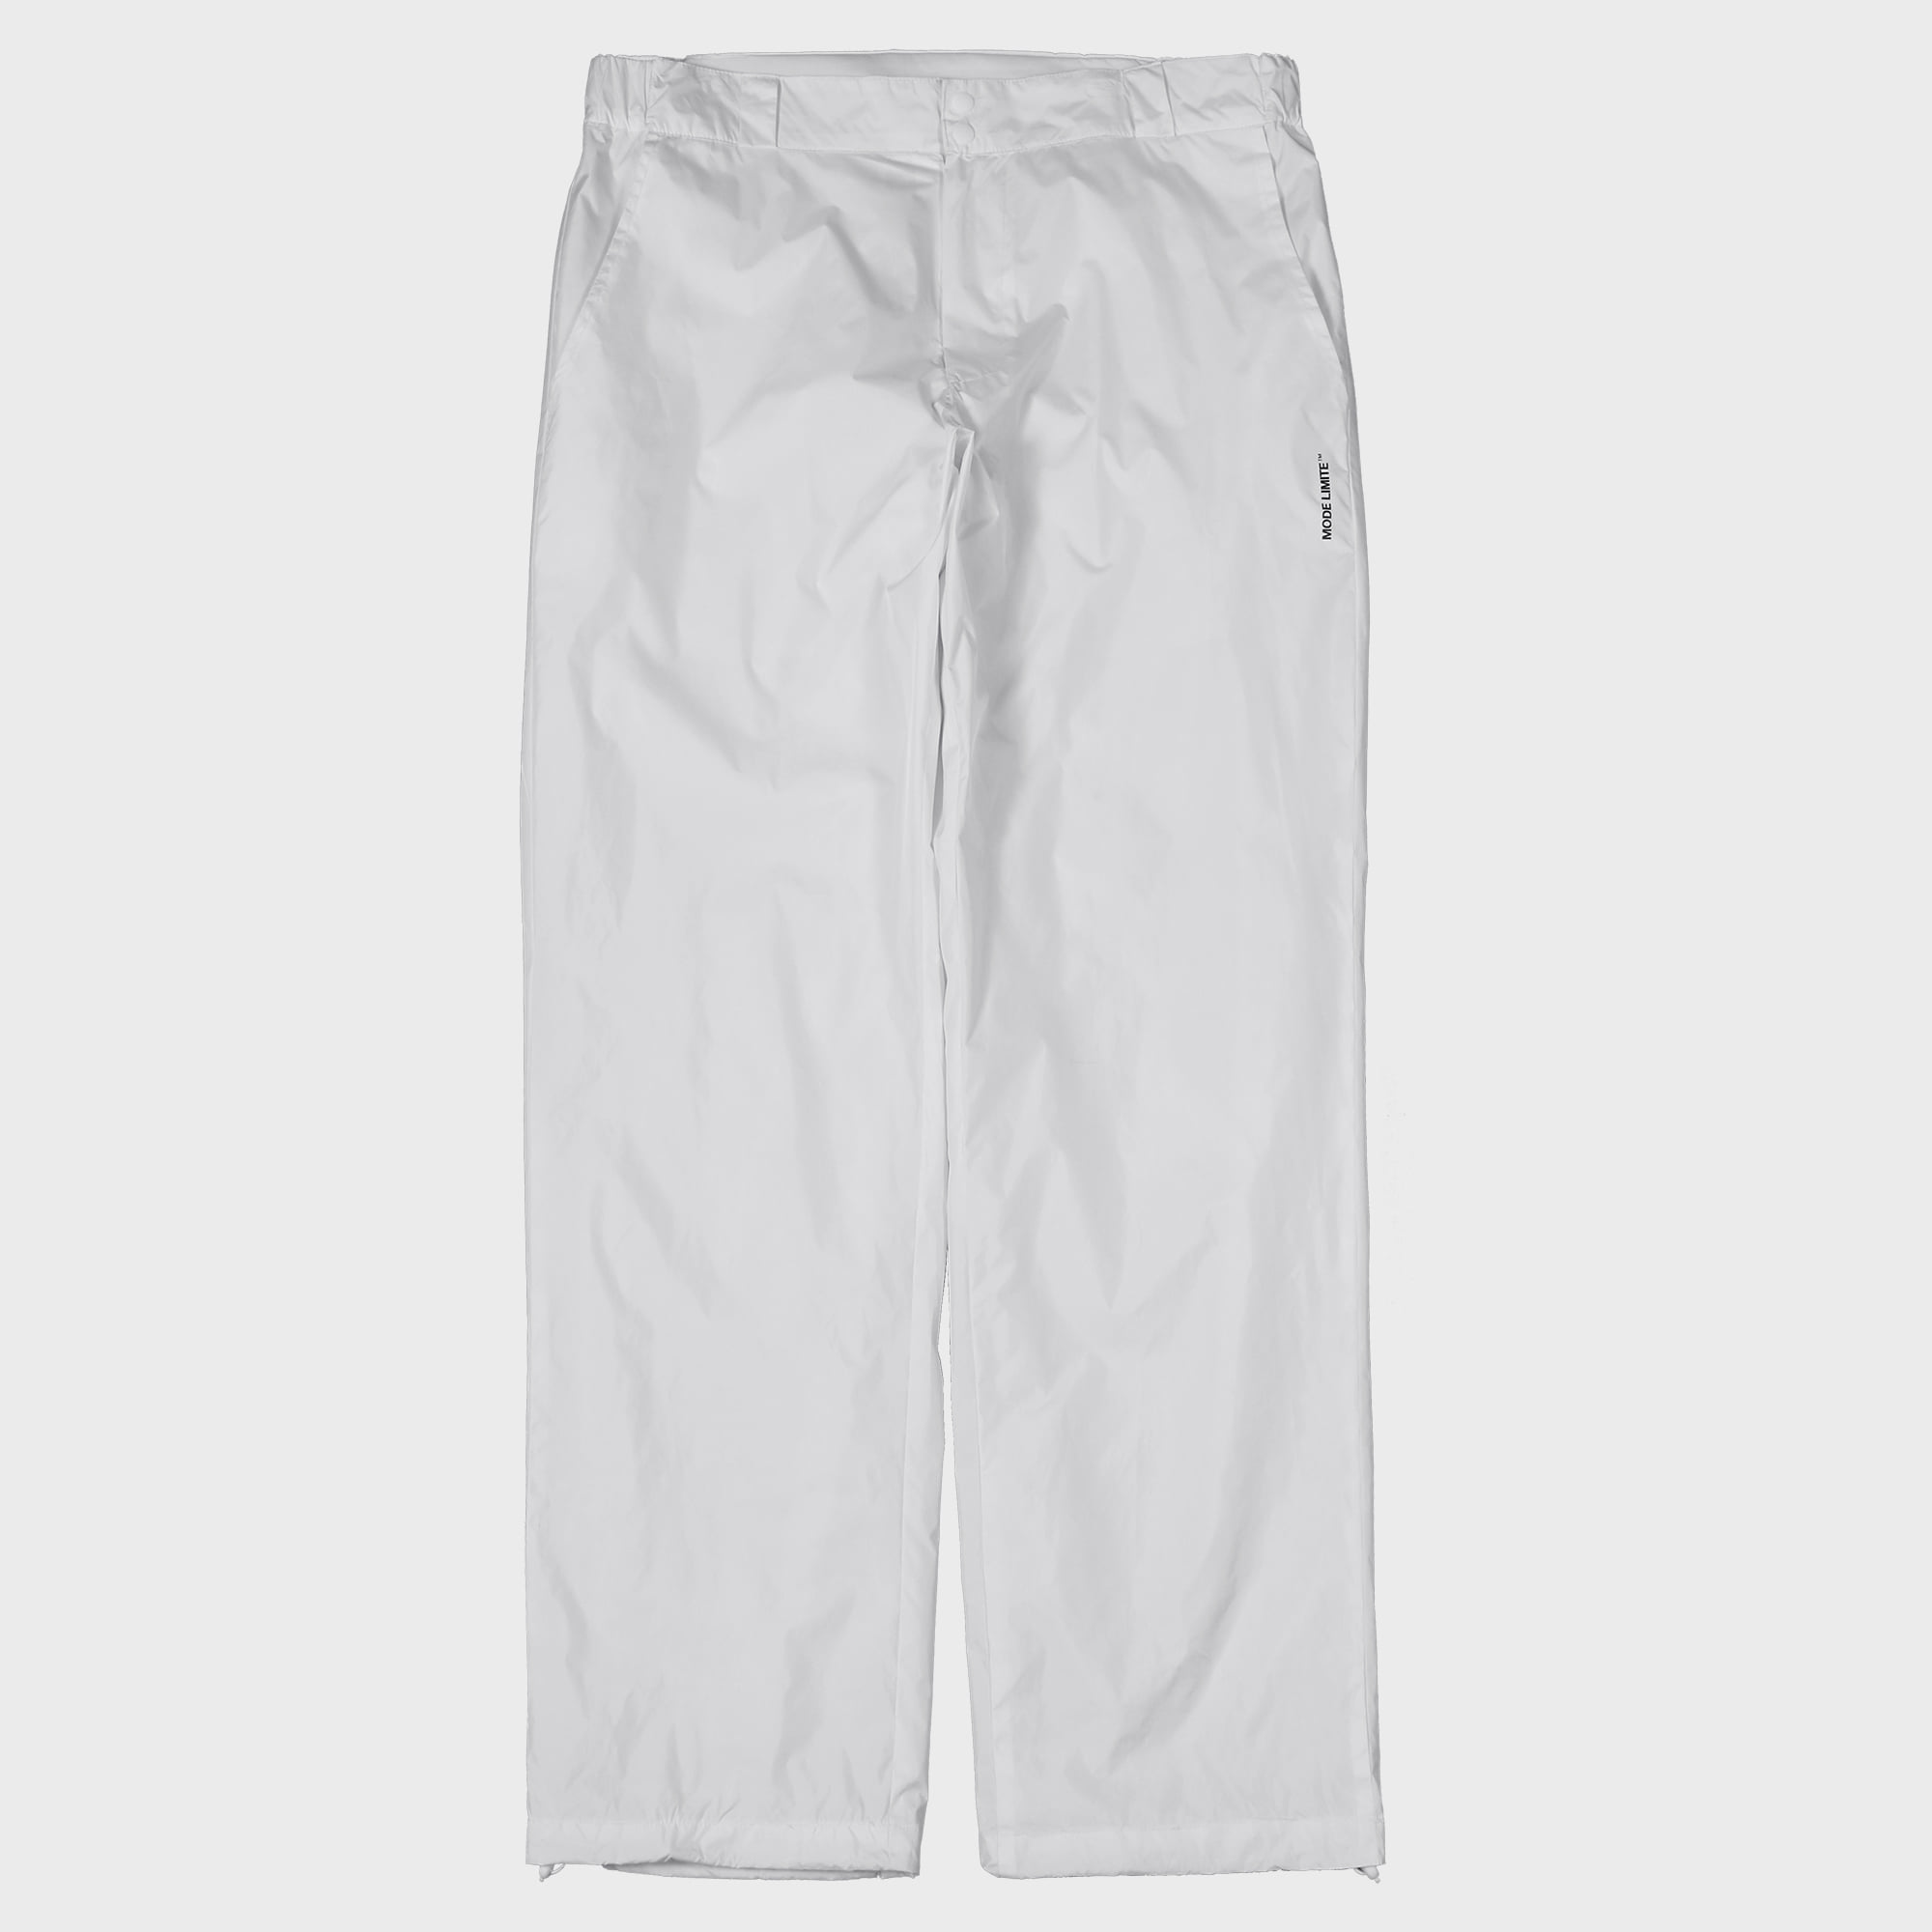 Nylon String Pants White